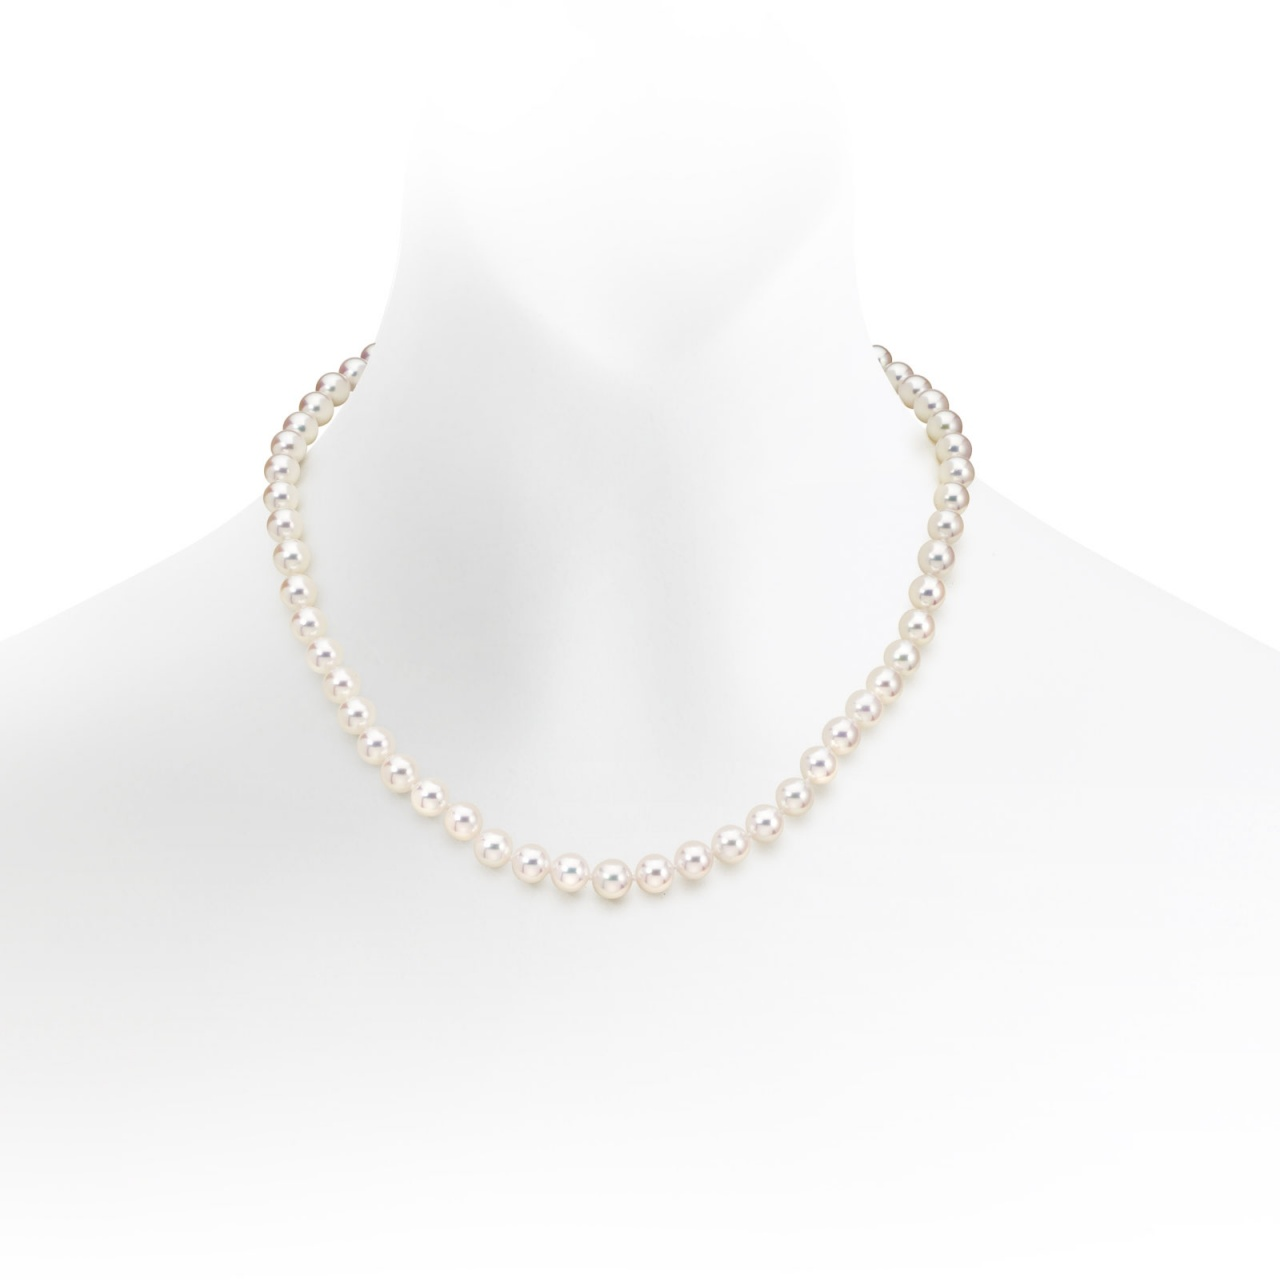 Classic Akoya Pearl Necklace and Earrings Set in White Gold-SETSAK0155-1